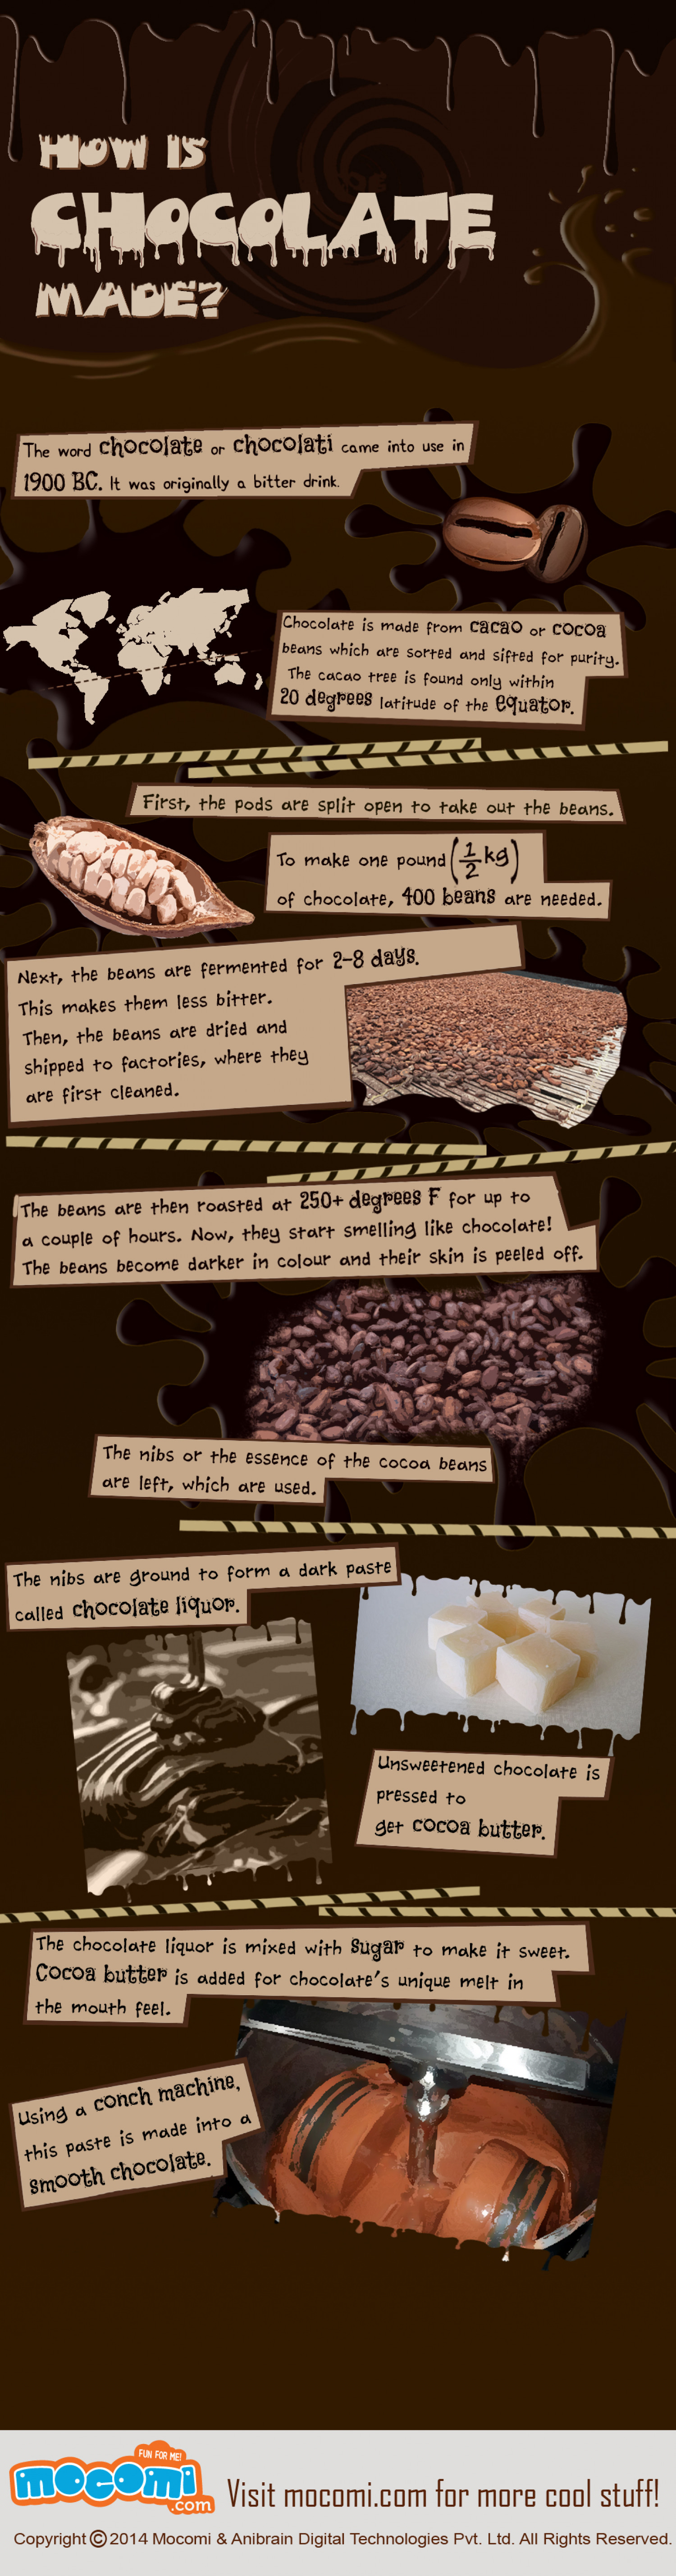 How is Chocolate made? Infographic